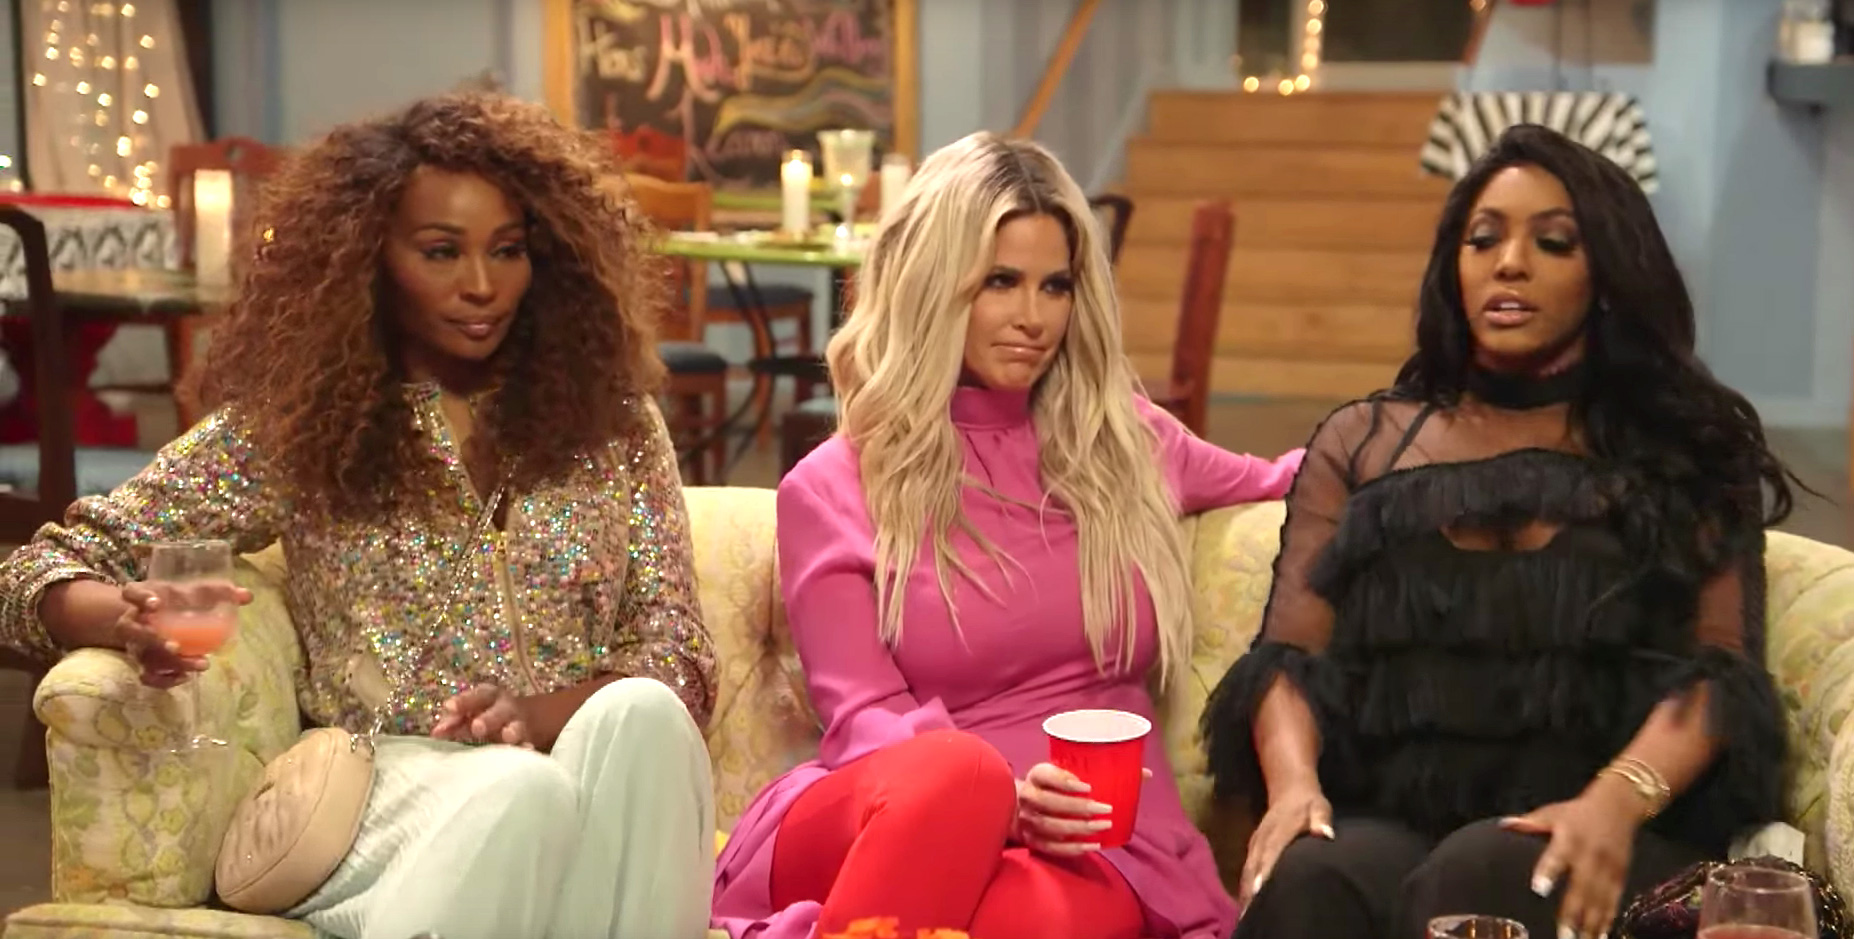 Real Housewives star Kandi Burruss calls out Kim Zolciak-Biermann on Twitter